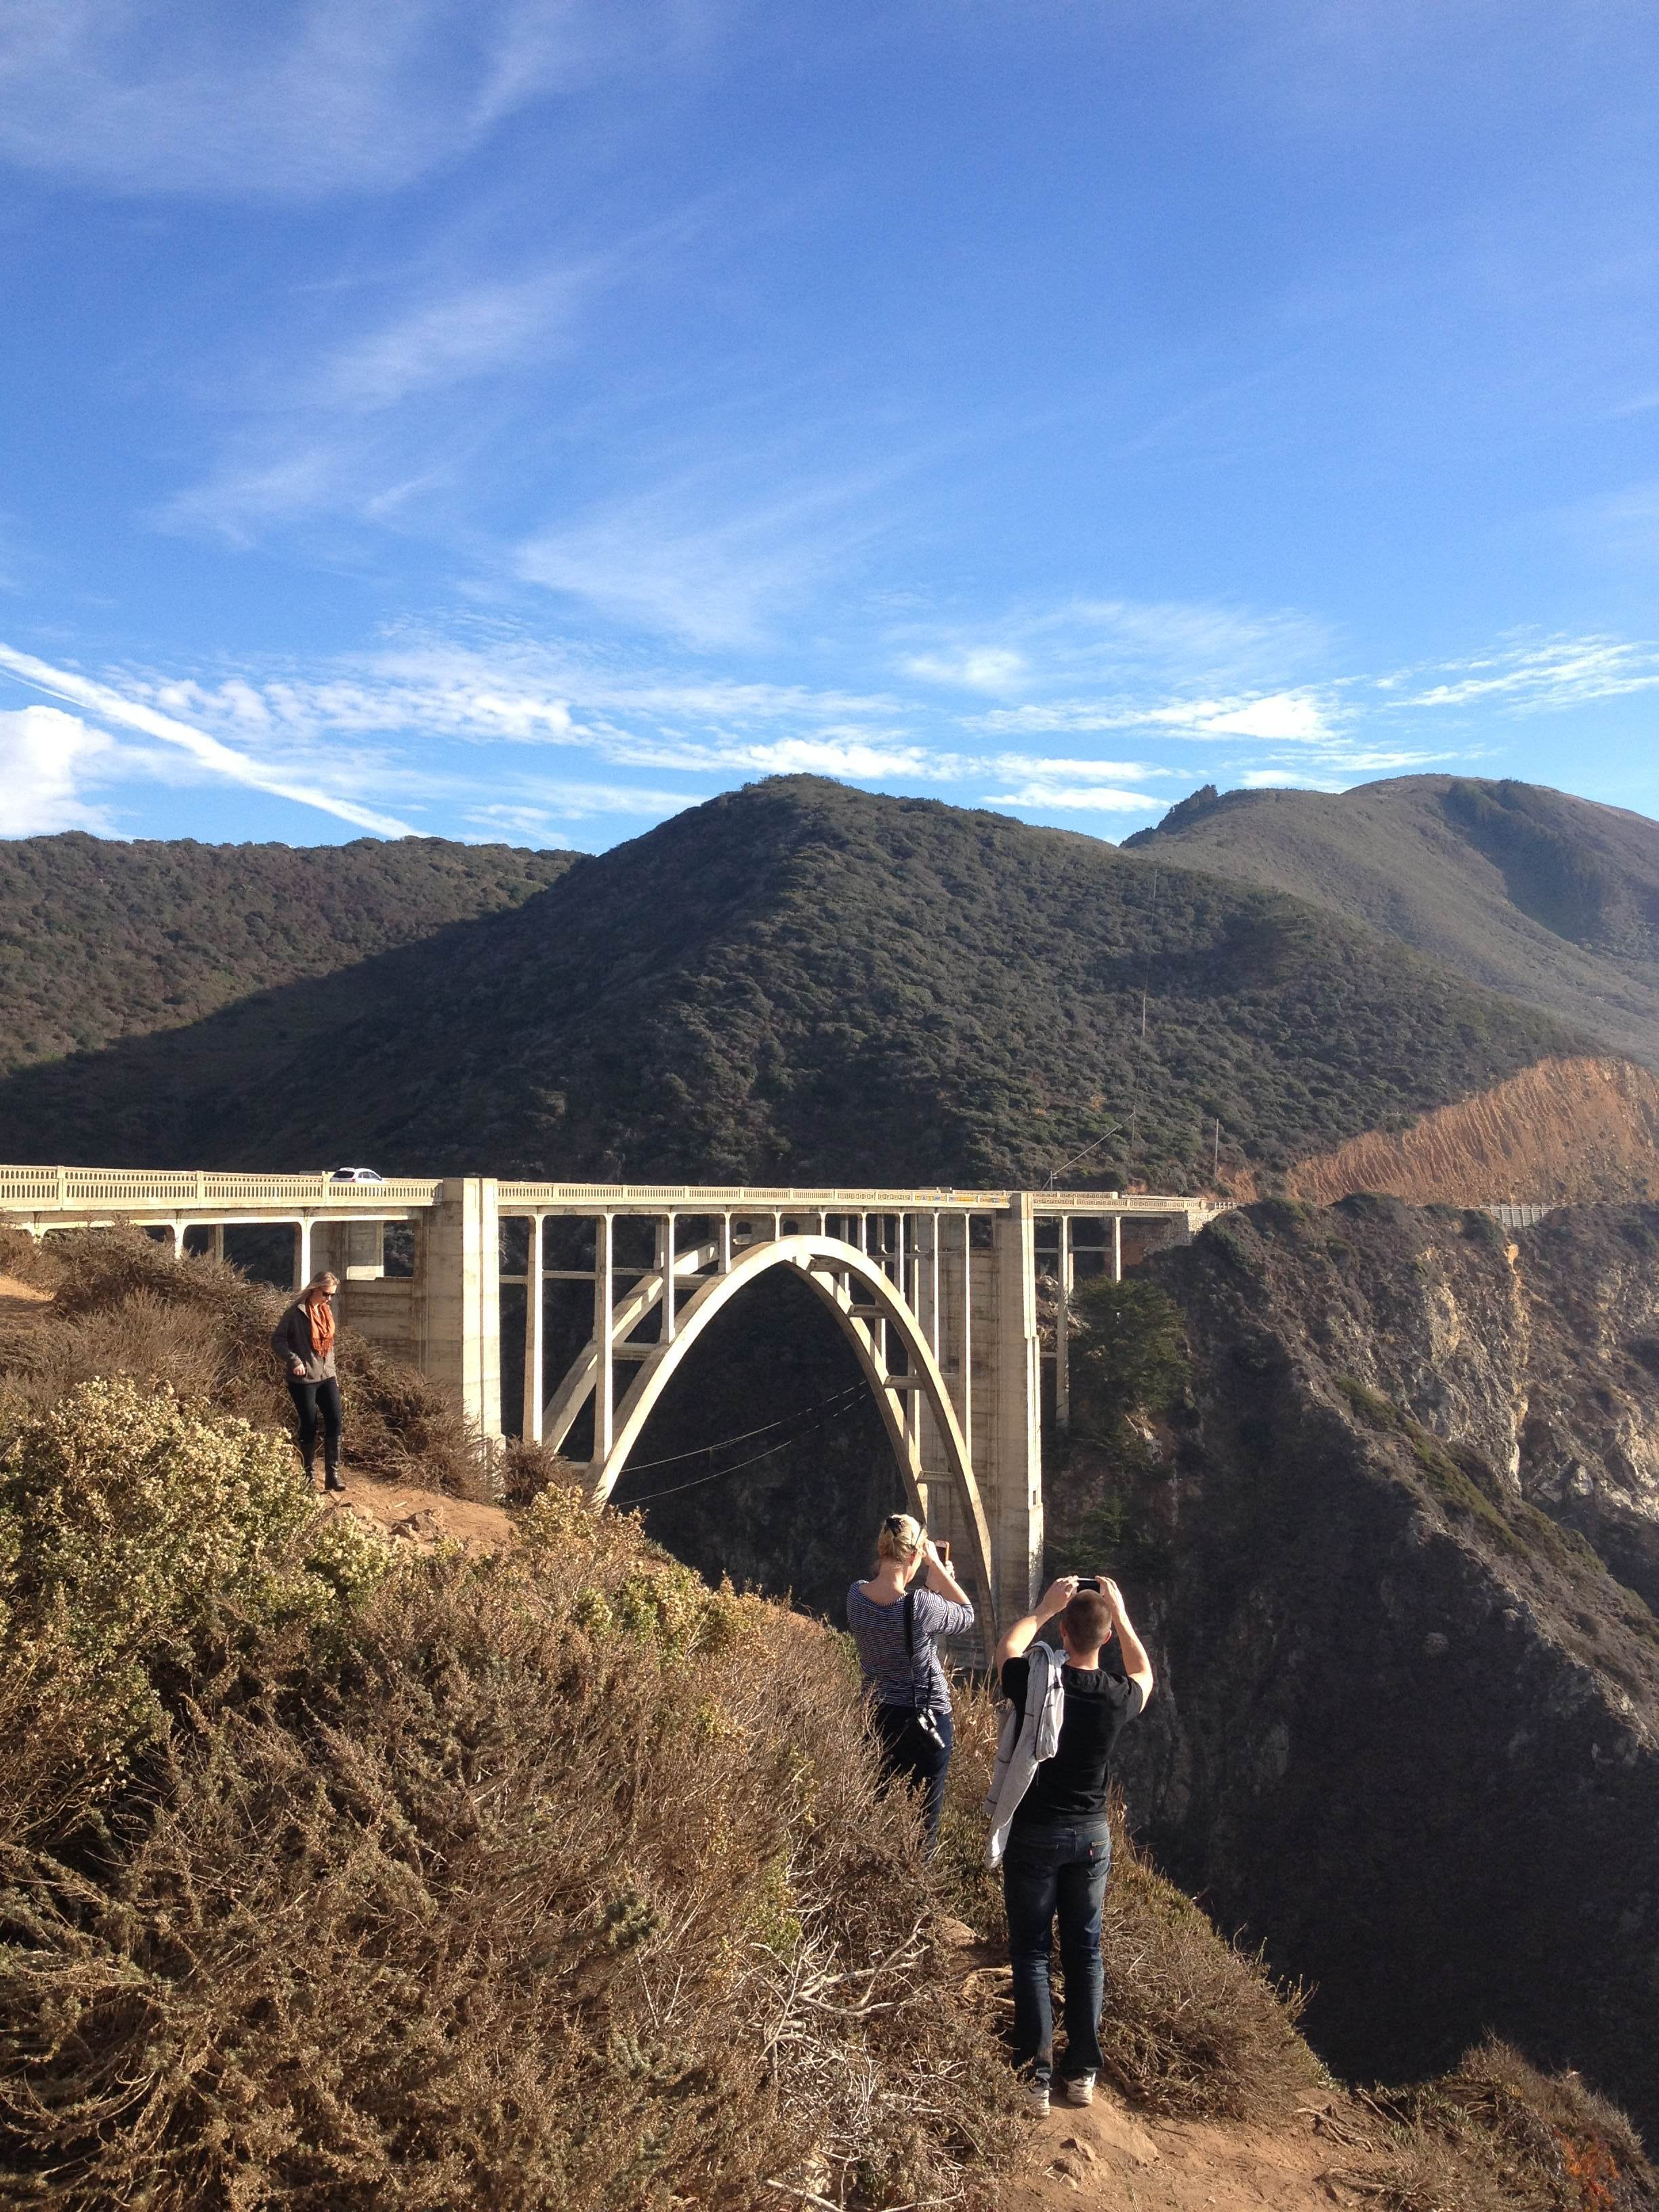 The famous Bixby Bridge